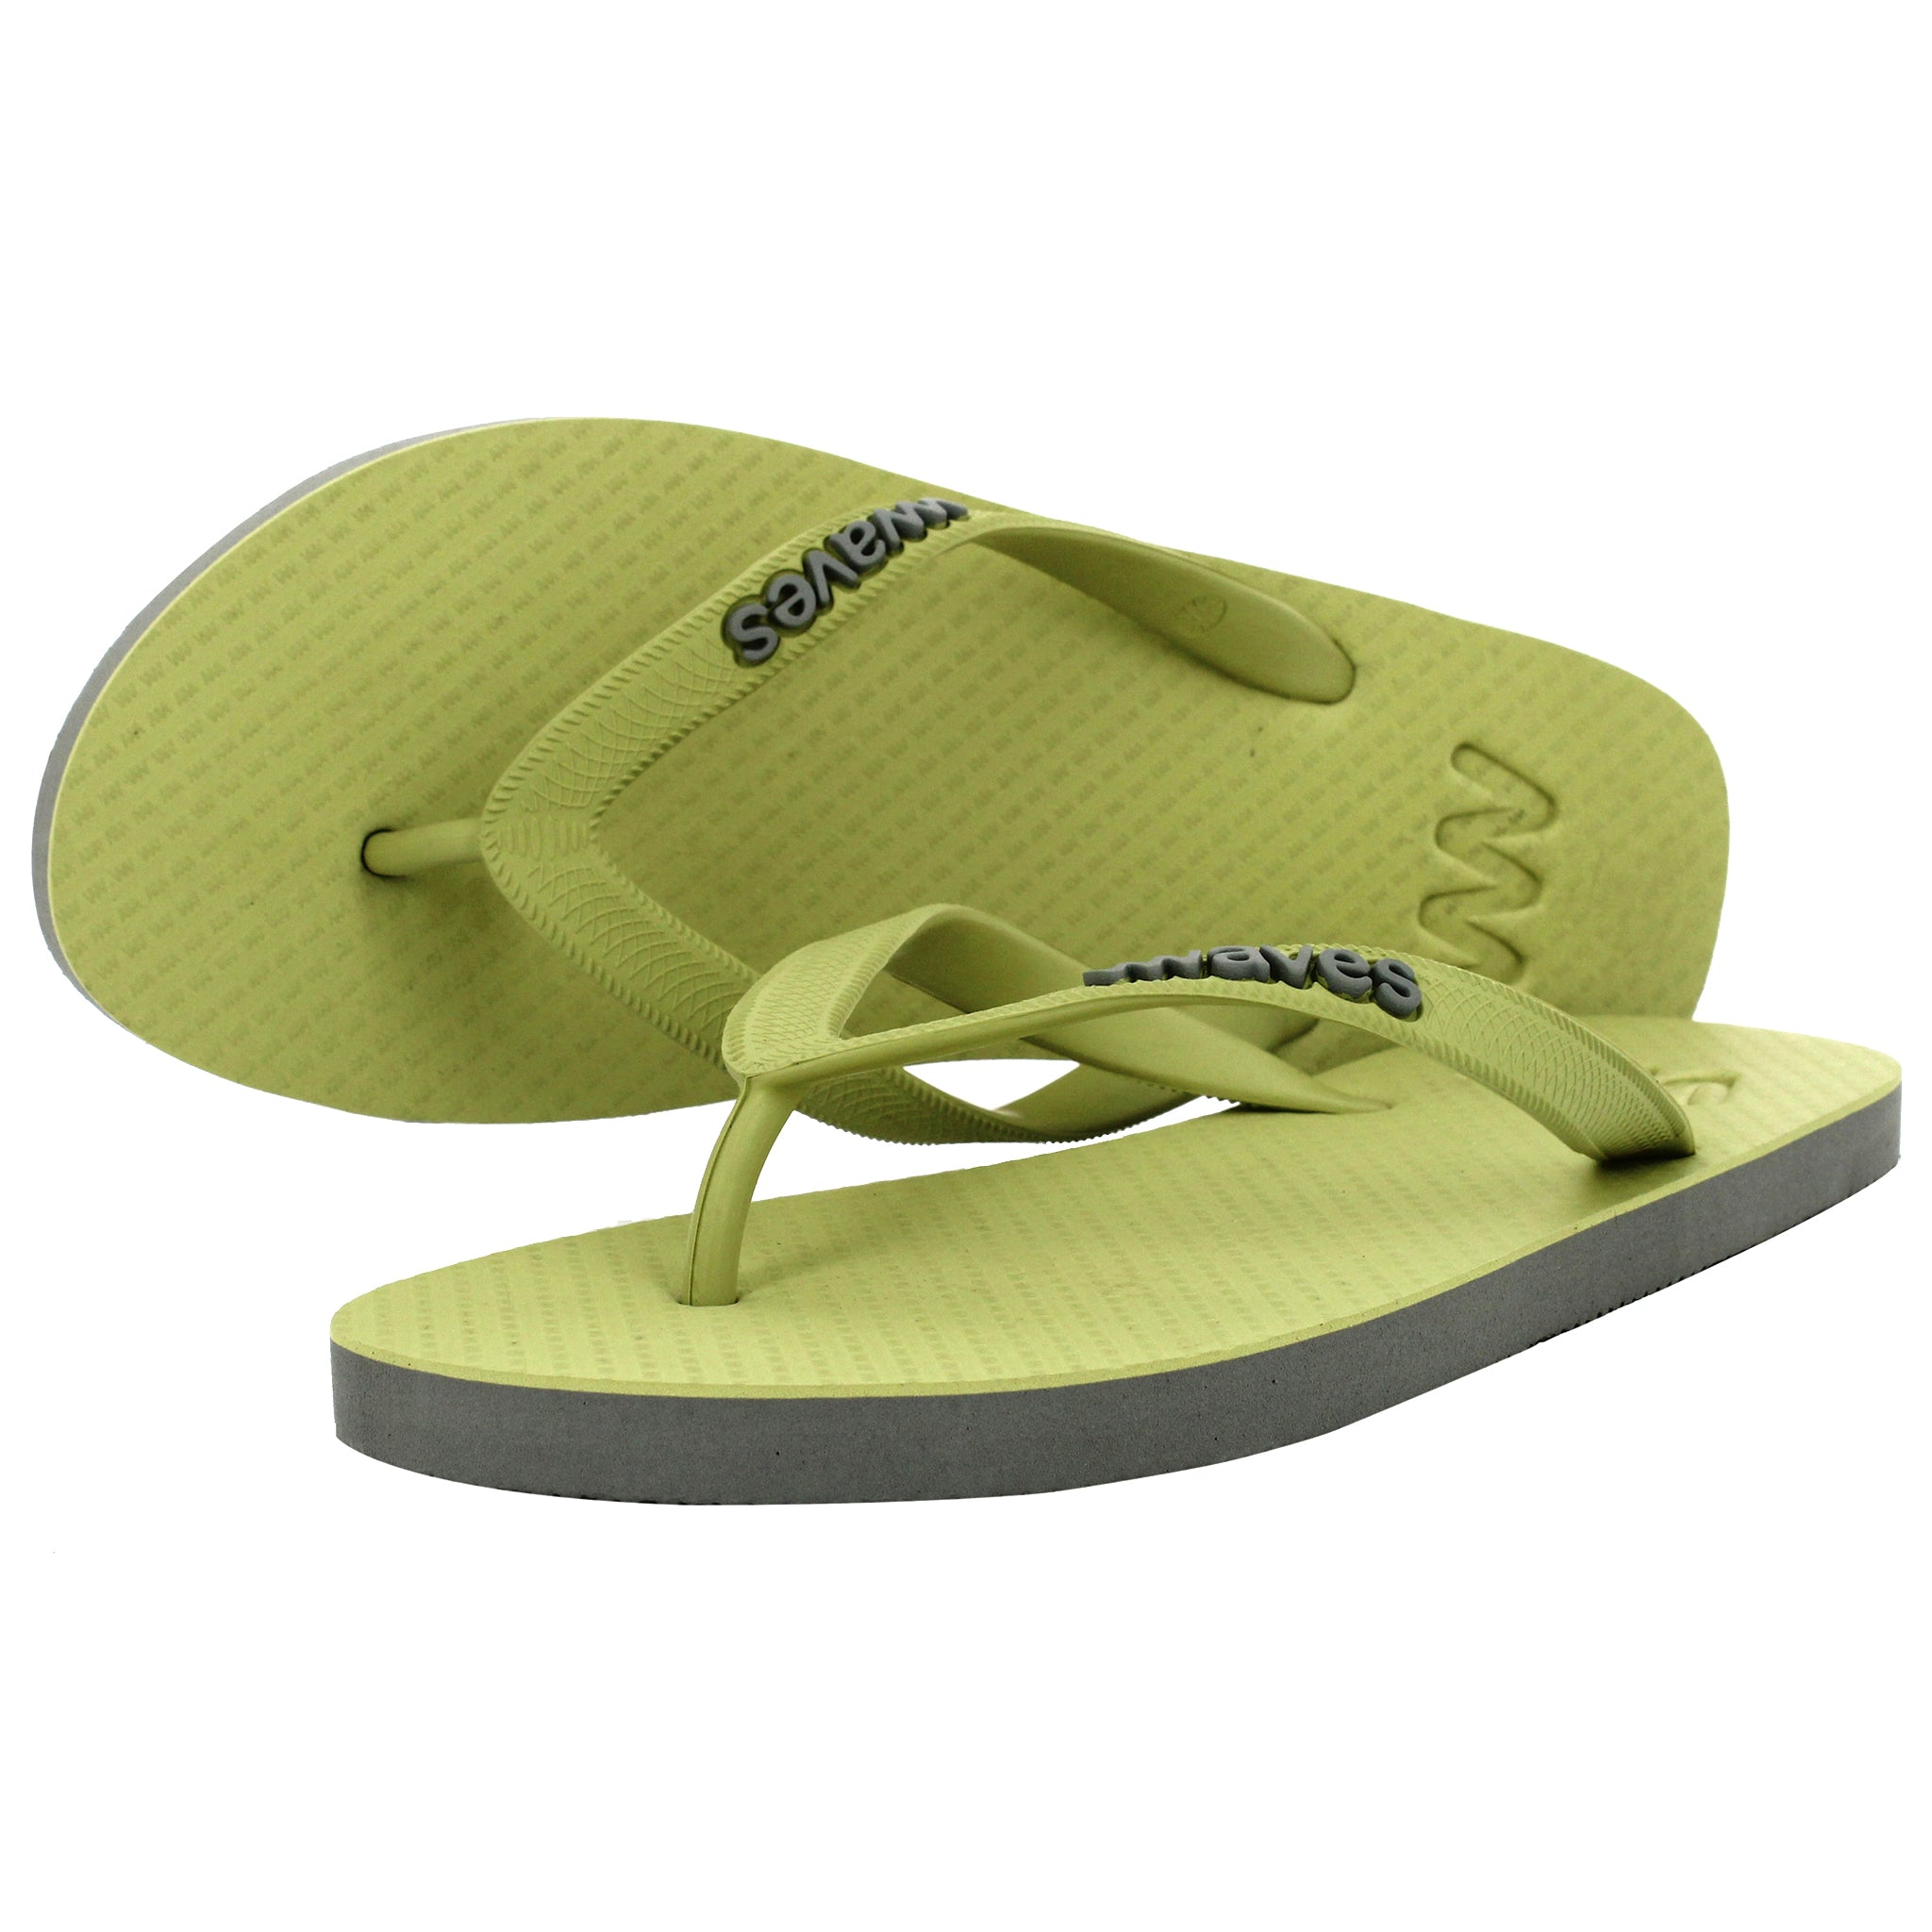 Olive Green and Gray Twofold Flip Flops, Men's